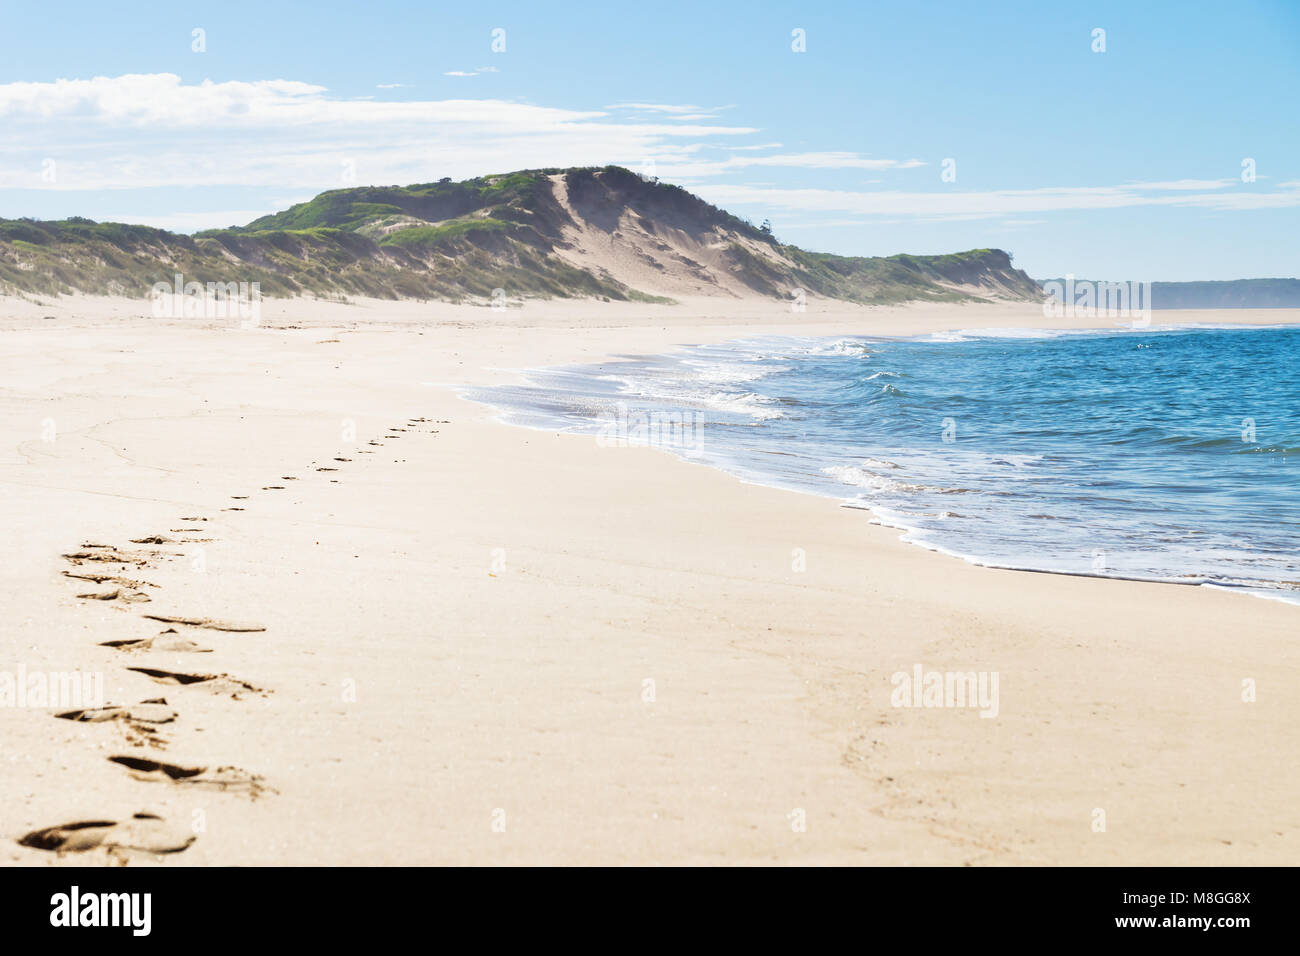 Australian Beach Stock Photos & Australian Beach Stock Images - Alamy